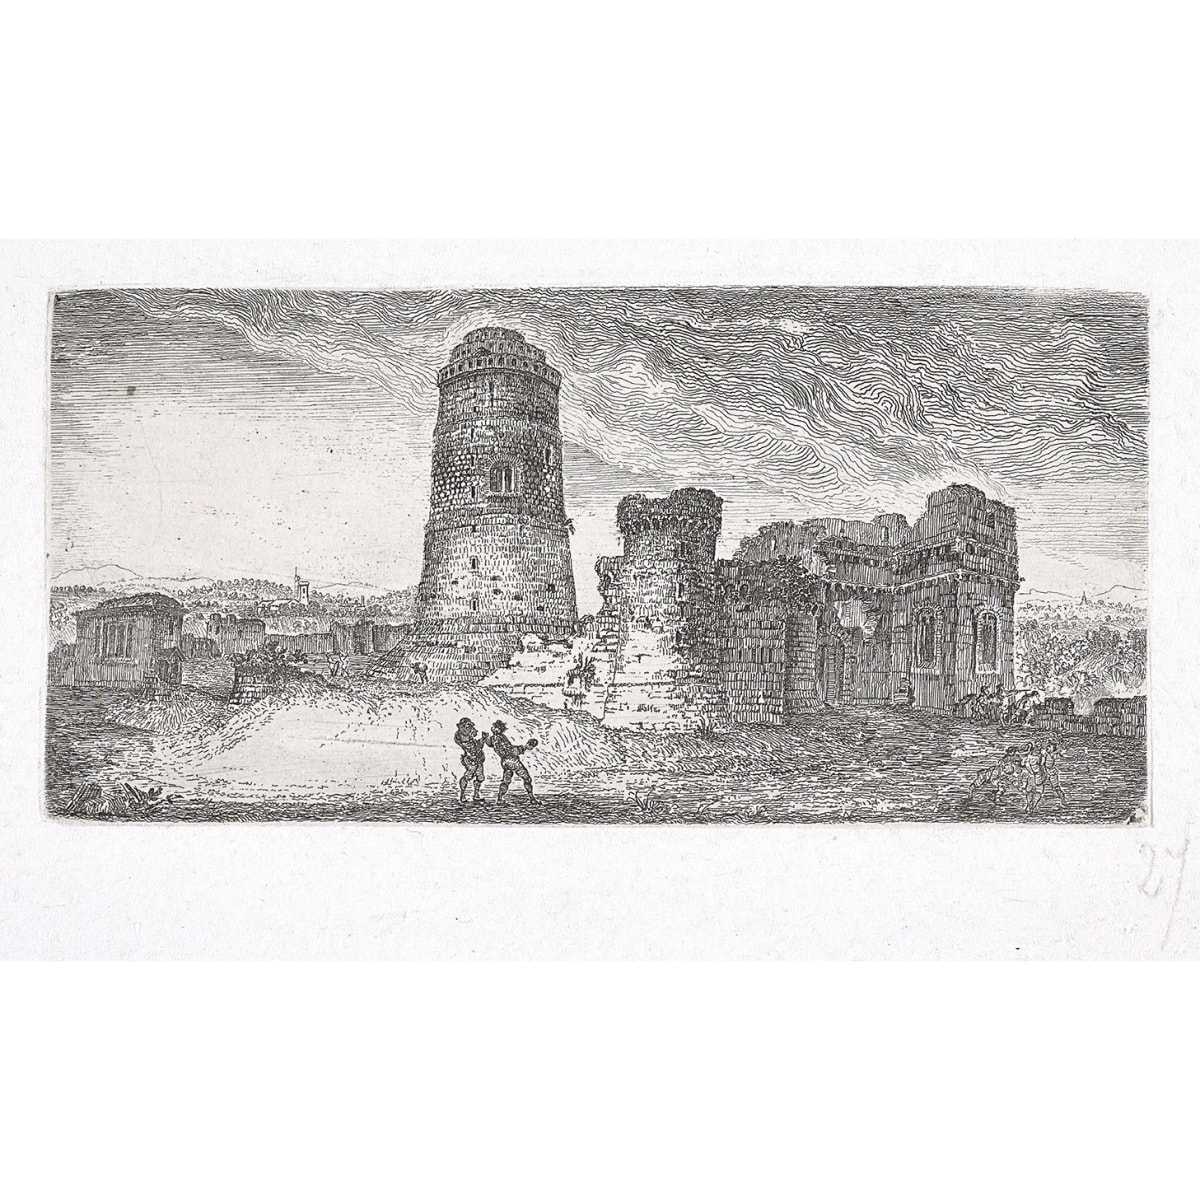 John Clerk of Eldin Tower at Pembroke Castle etching 3 x 6 1/4 inches only state